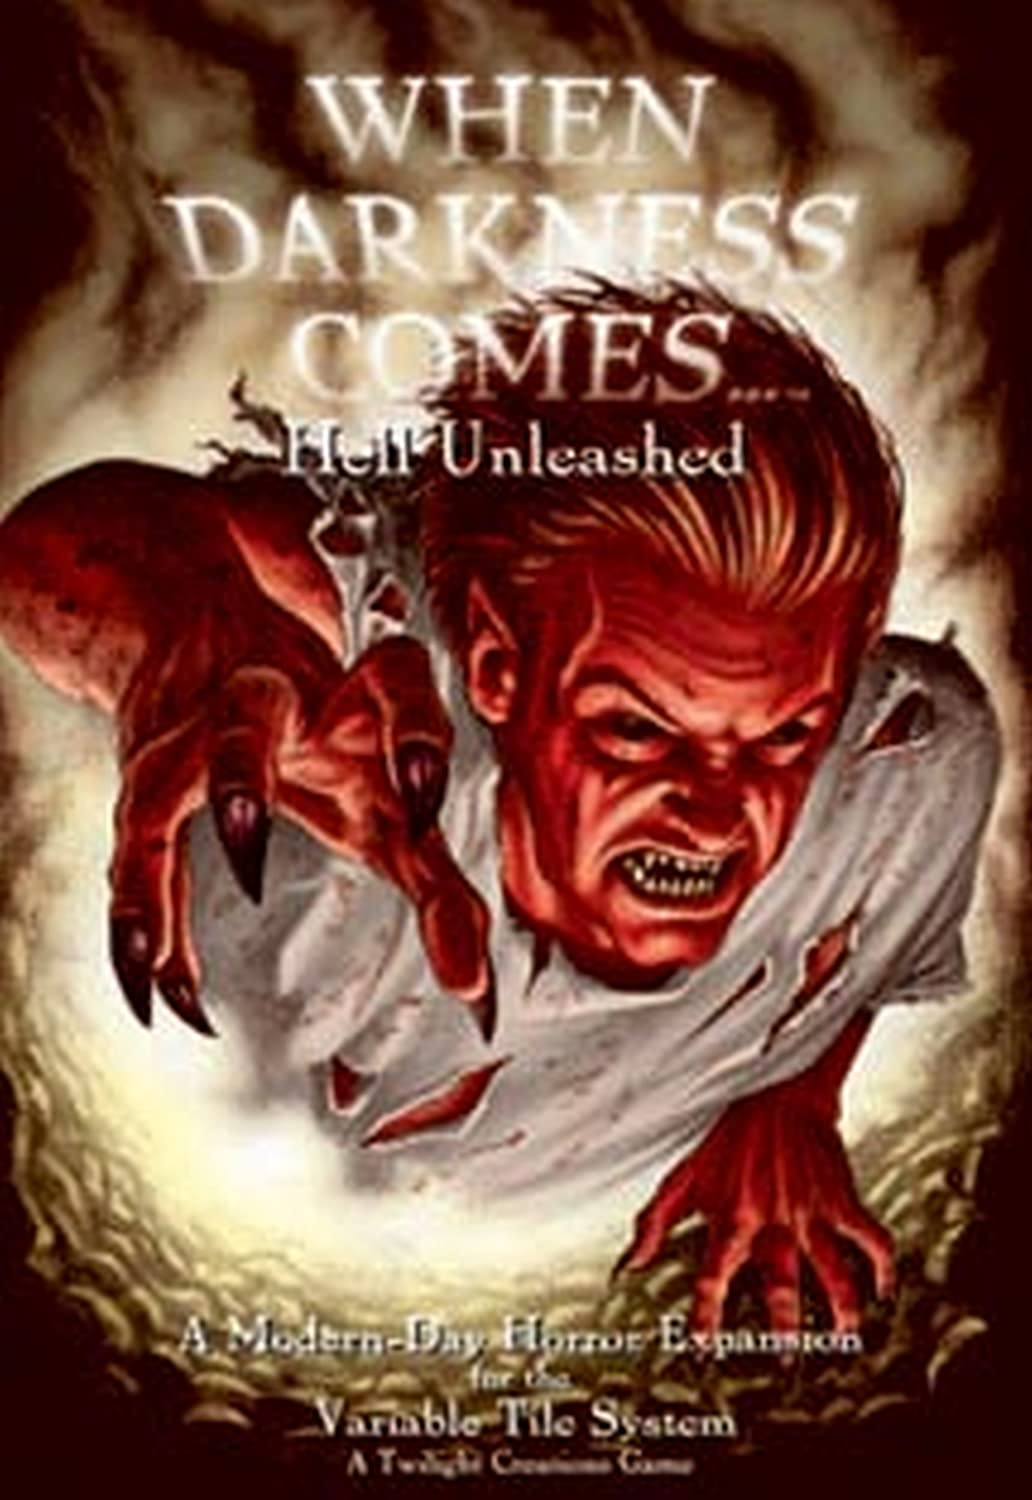 When Darkness Comes Expansion: Hell Unleashed